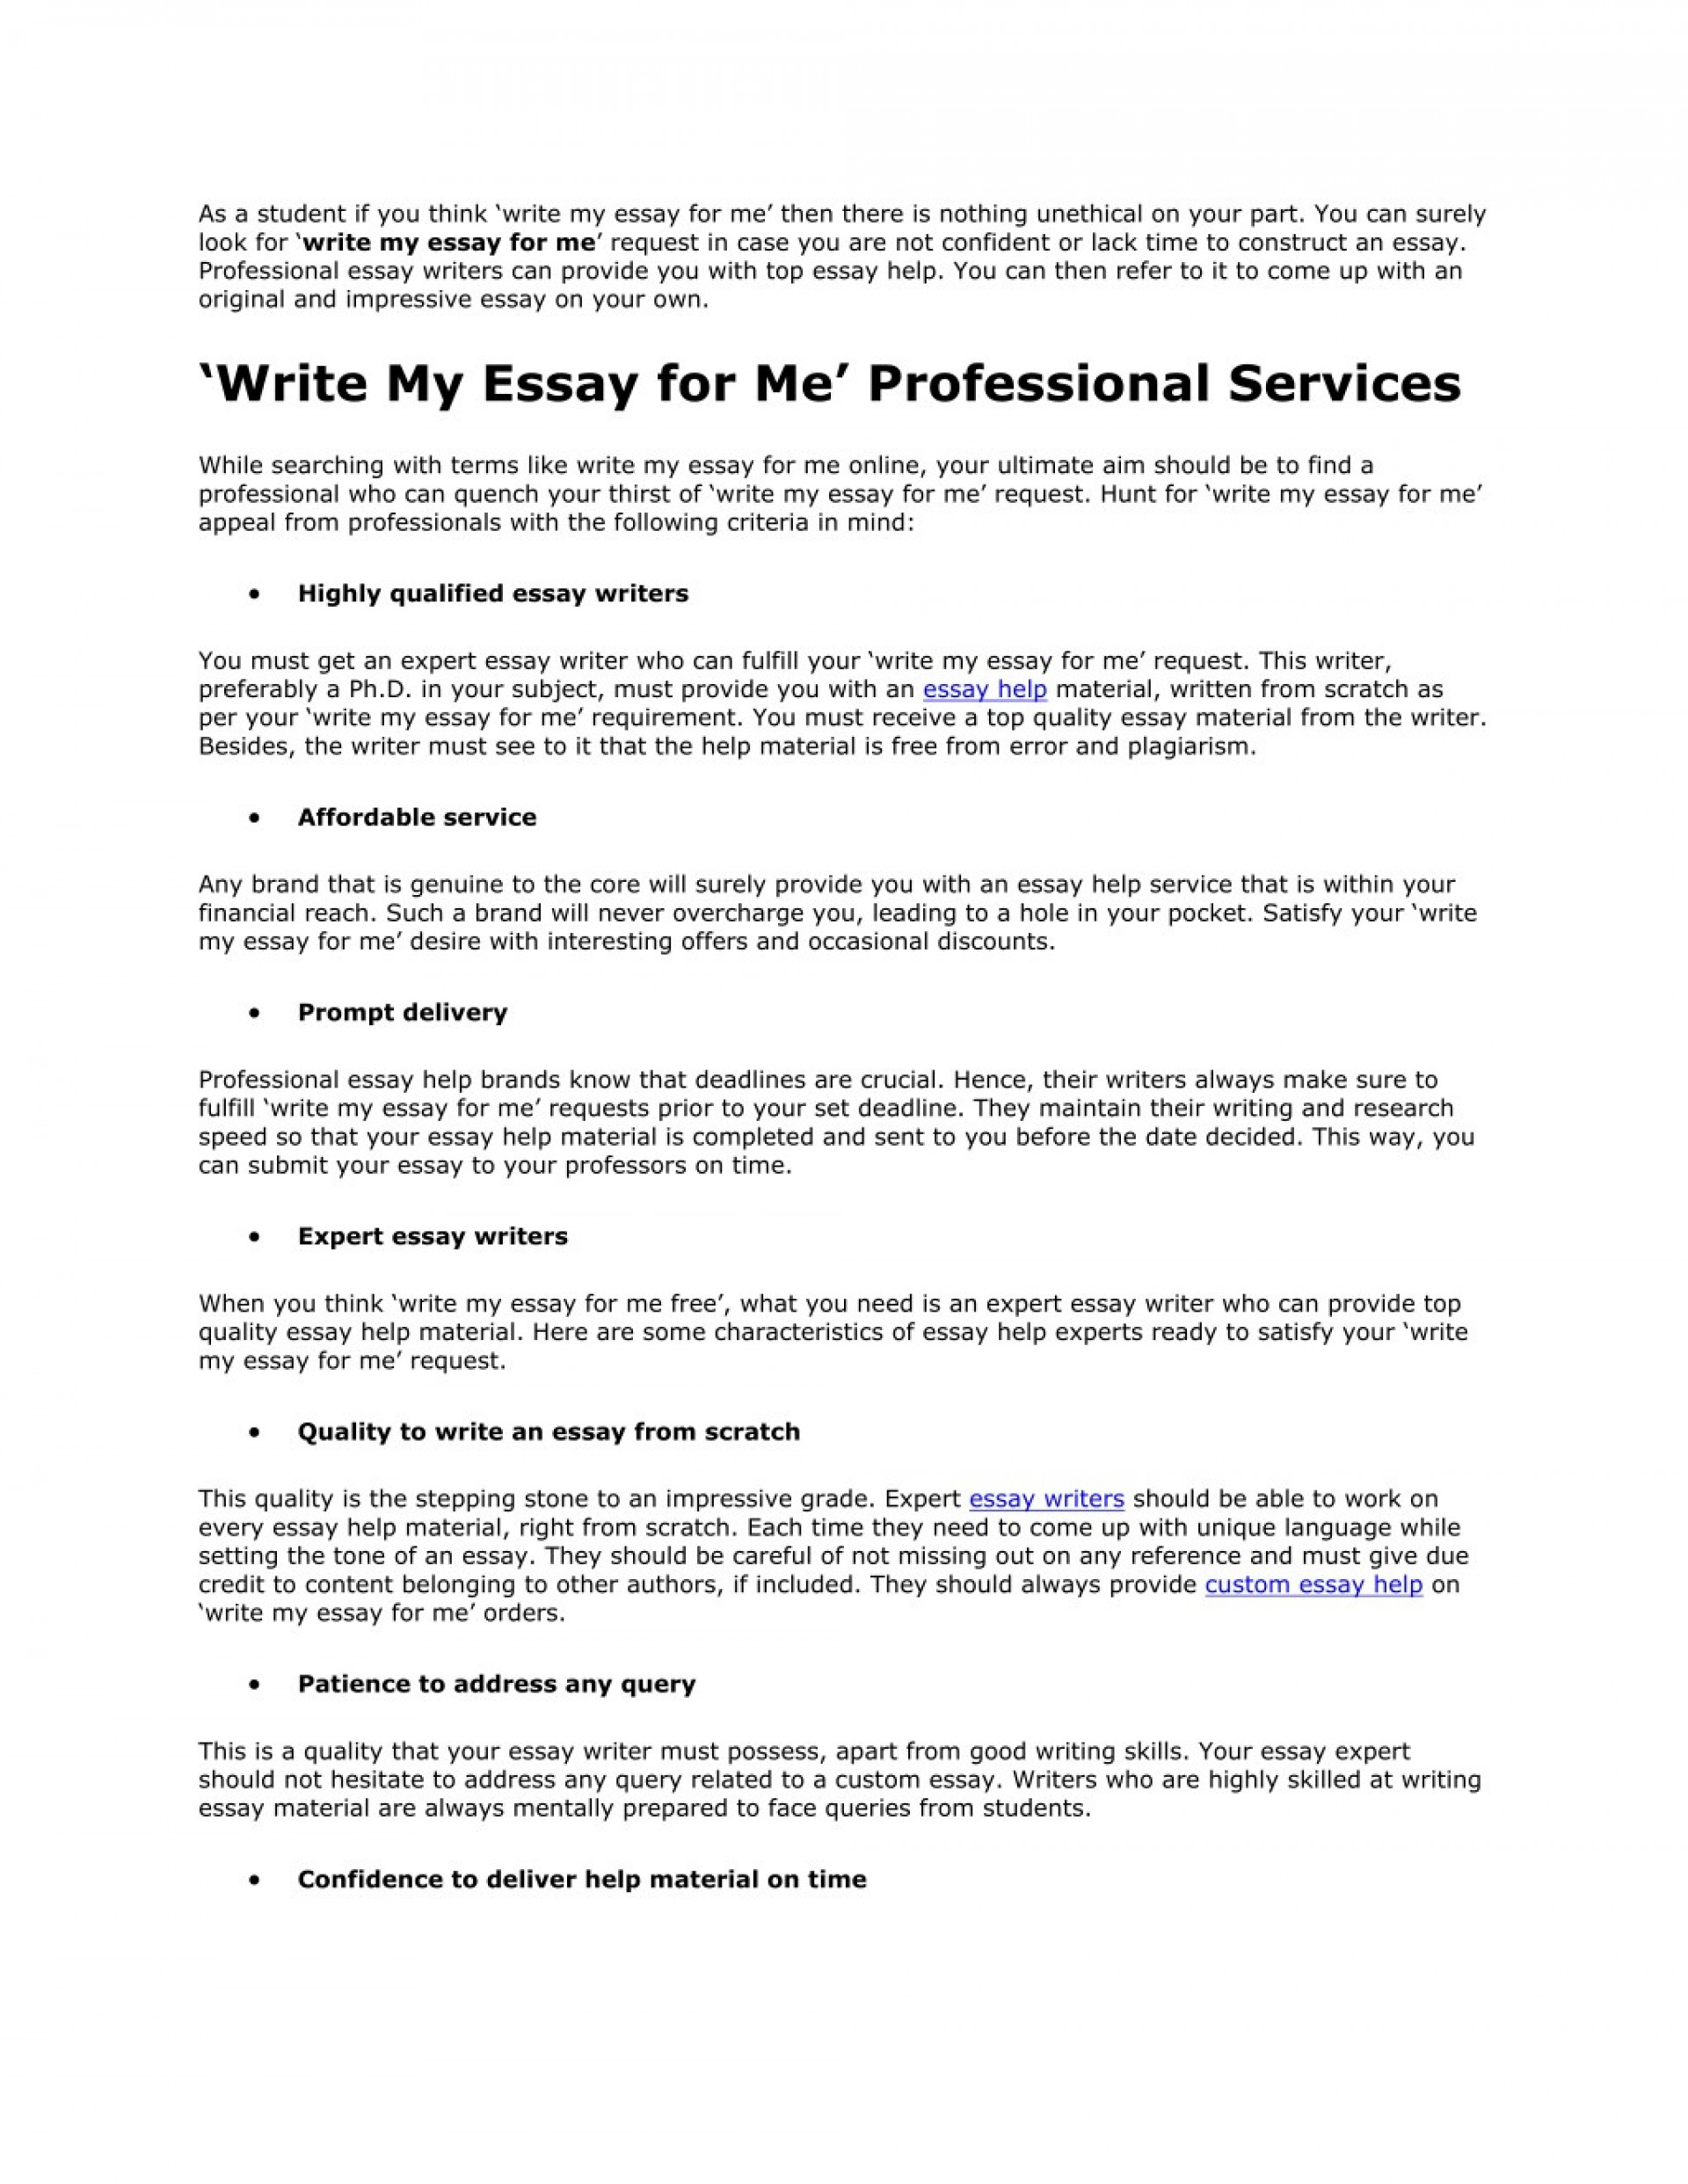 017 Write My Essay For Me Example As Student If You Think Surprising Generator 4 Me.org College Free 1920